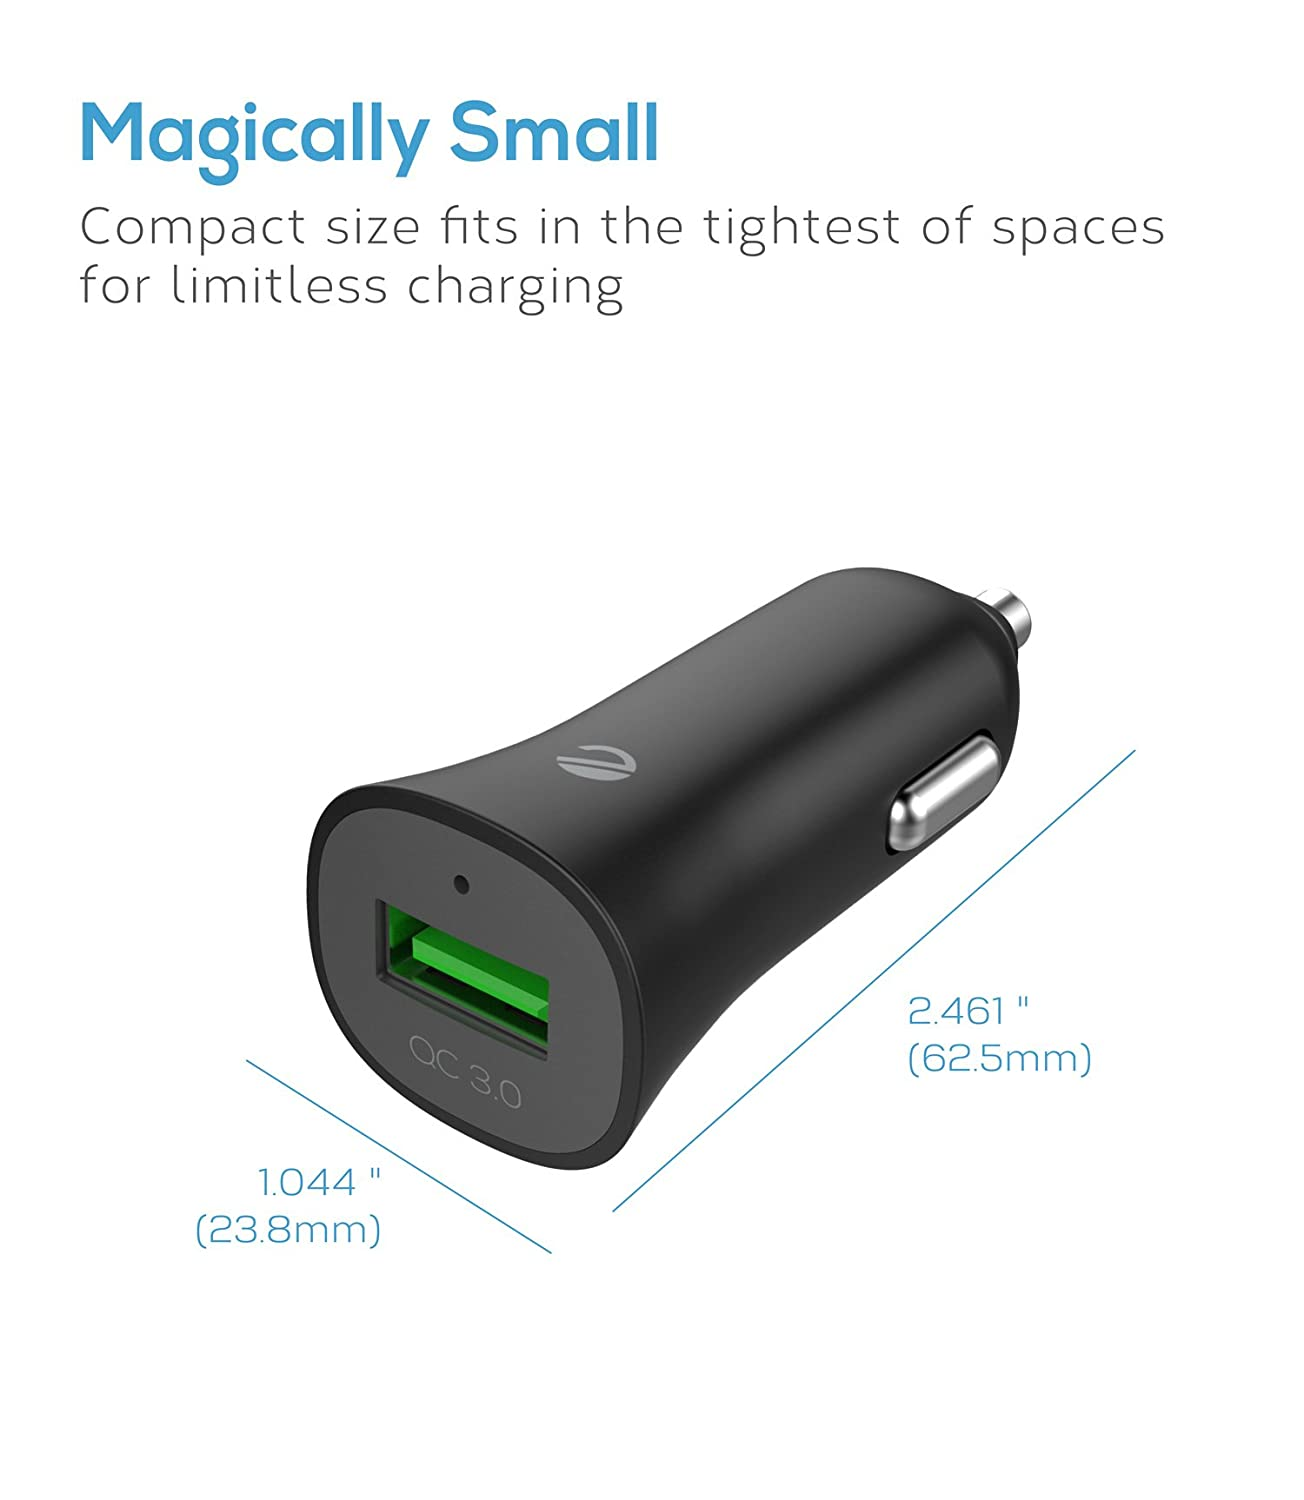 iPad Pro//Air//Mini Note 8//5//4 and smartIC Charging for iPhone 8//7//6s HTC LG eeco Car Charger Quick Charge 3.0 USB Adapter 18W Fast Charging for Galaxy S8//S7//S6//Edge//Plus Nexus etc.